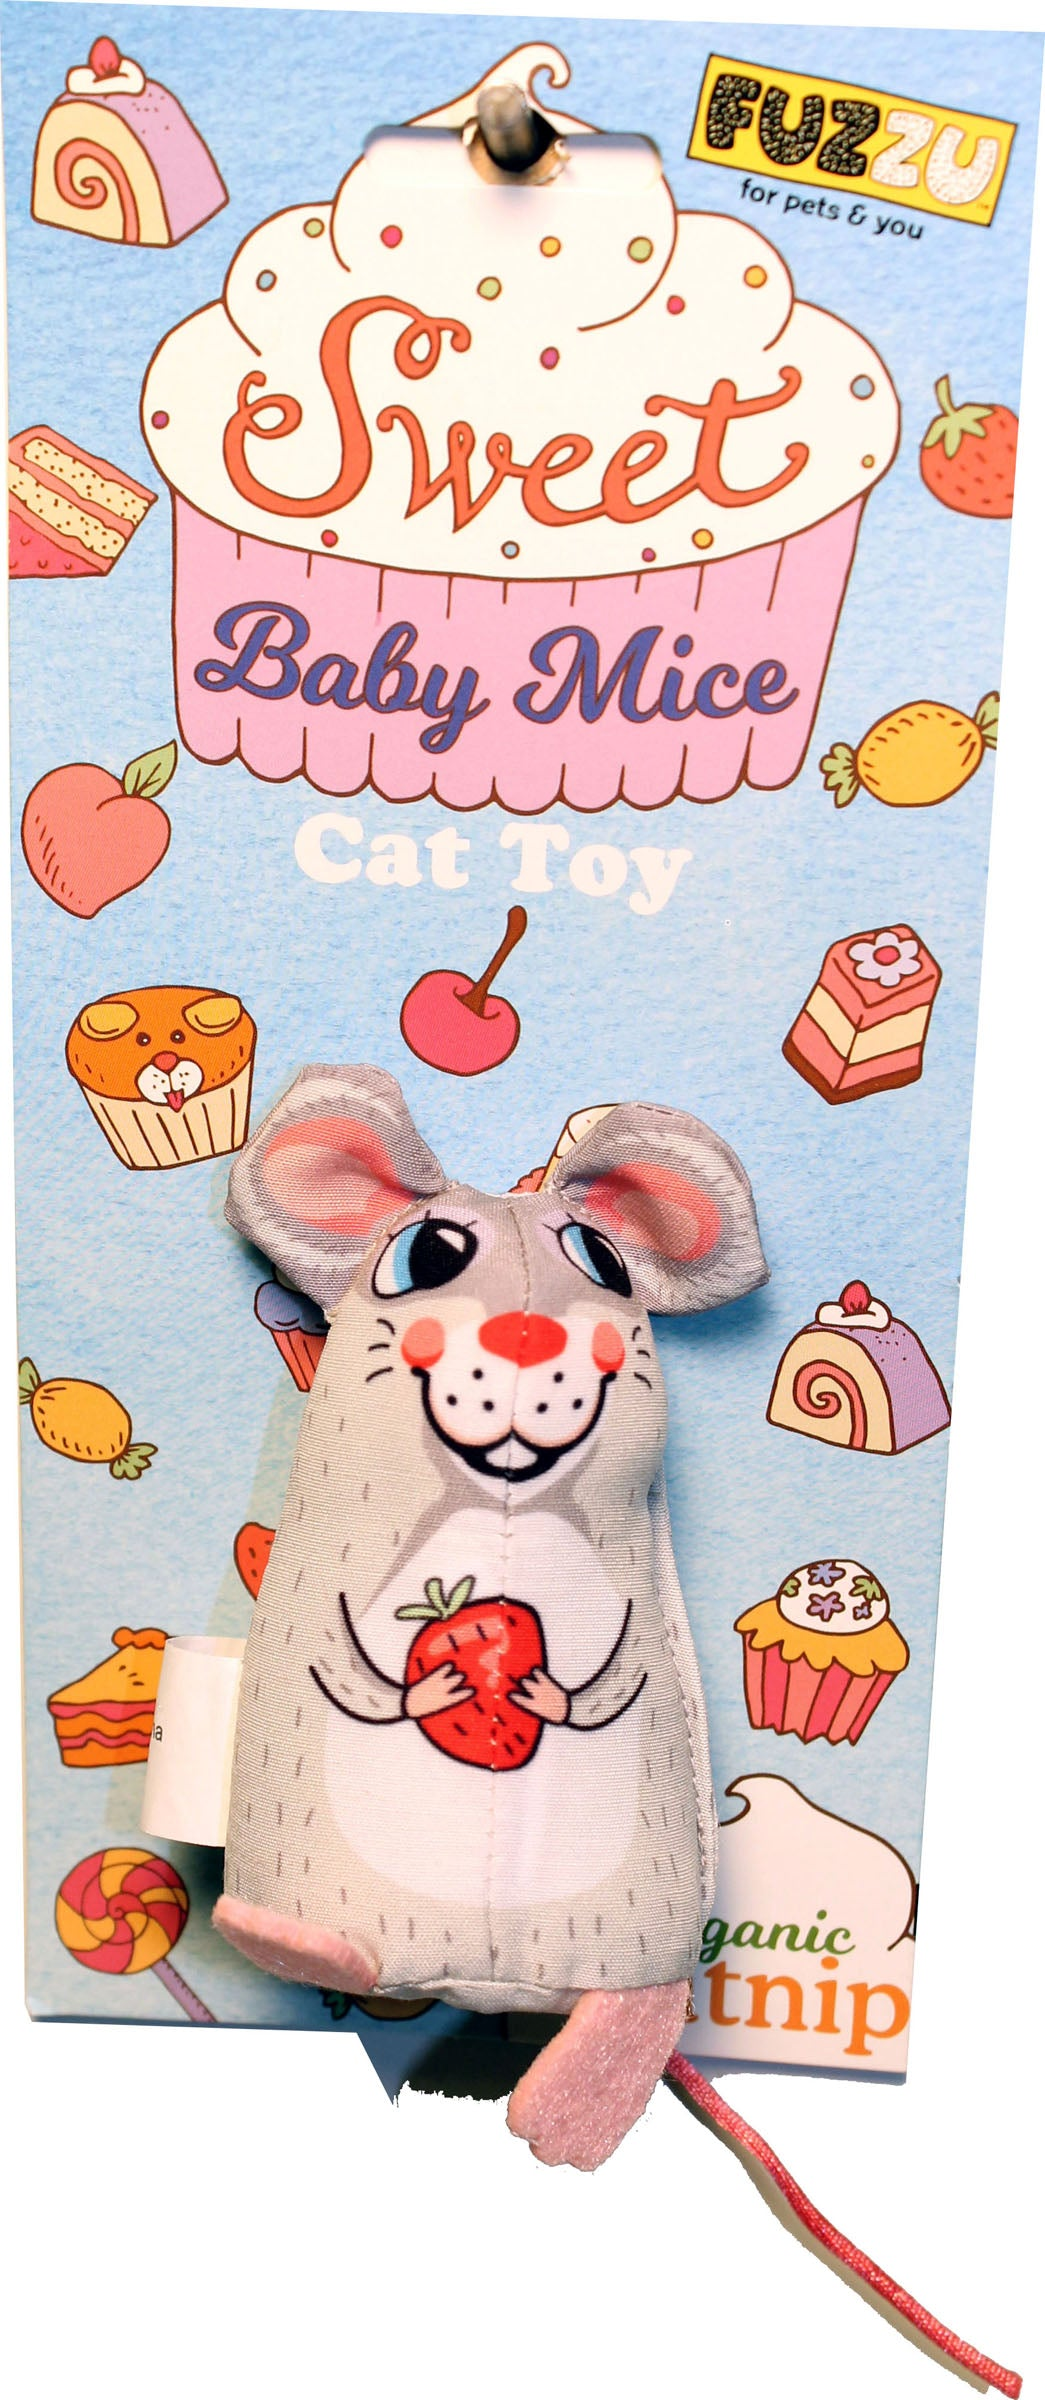 Sweet Baby Mice Sweetie Mouse Cat Toy